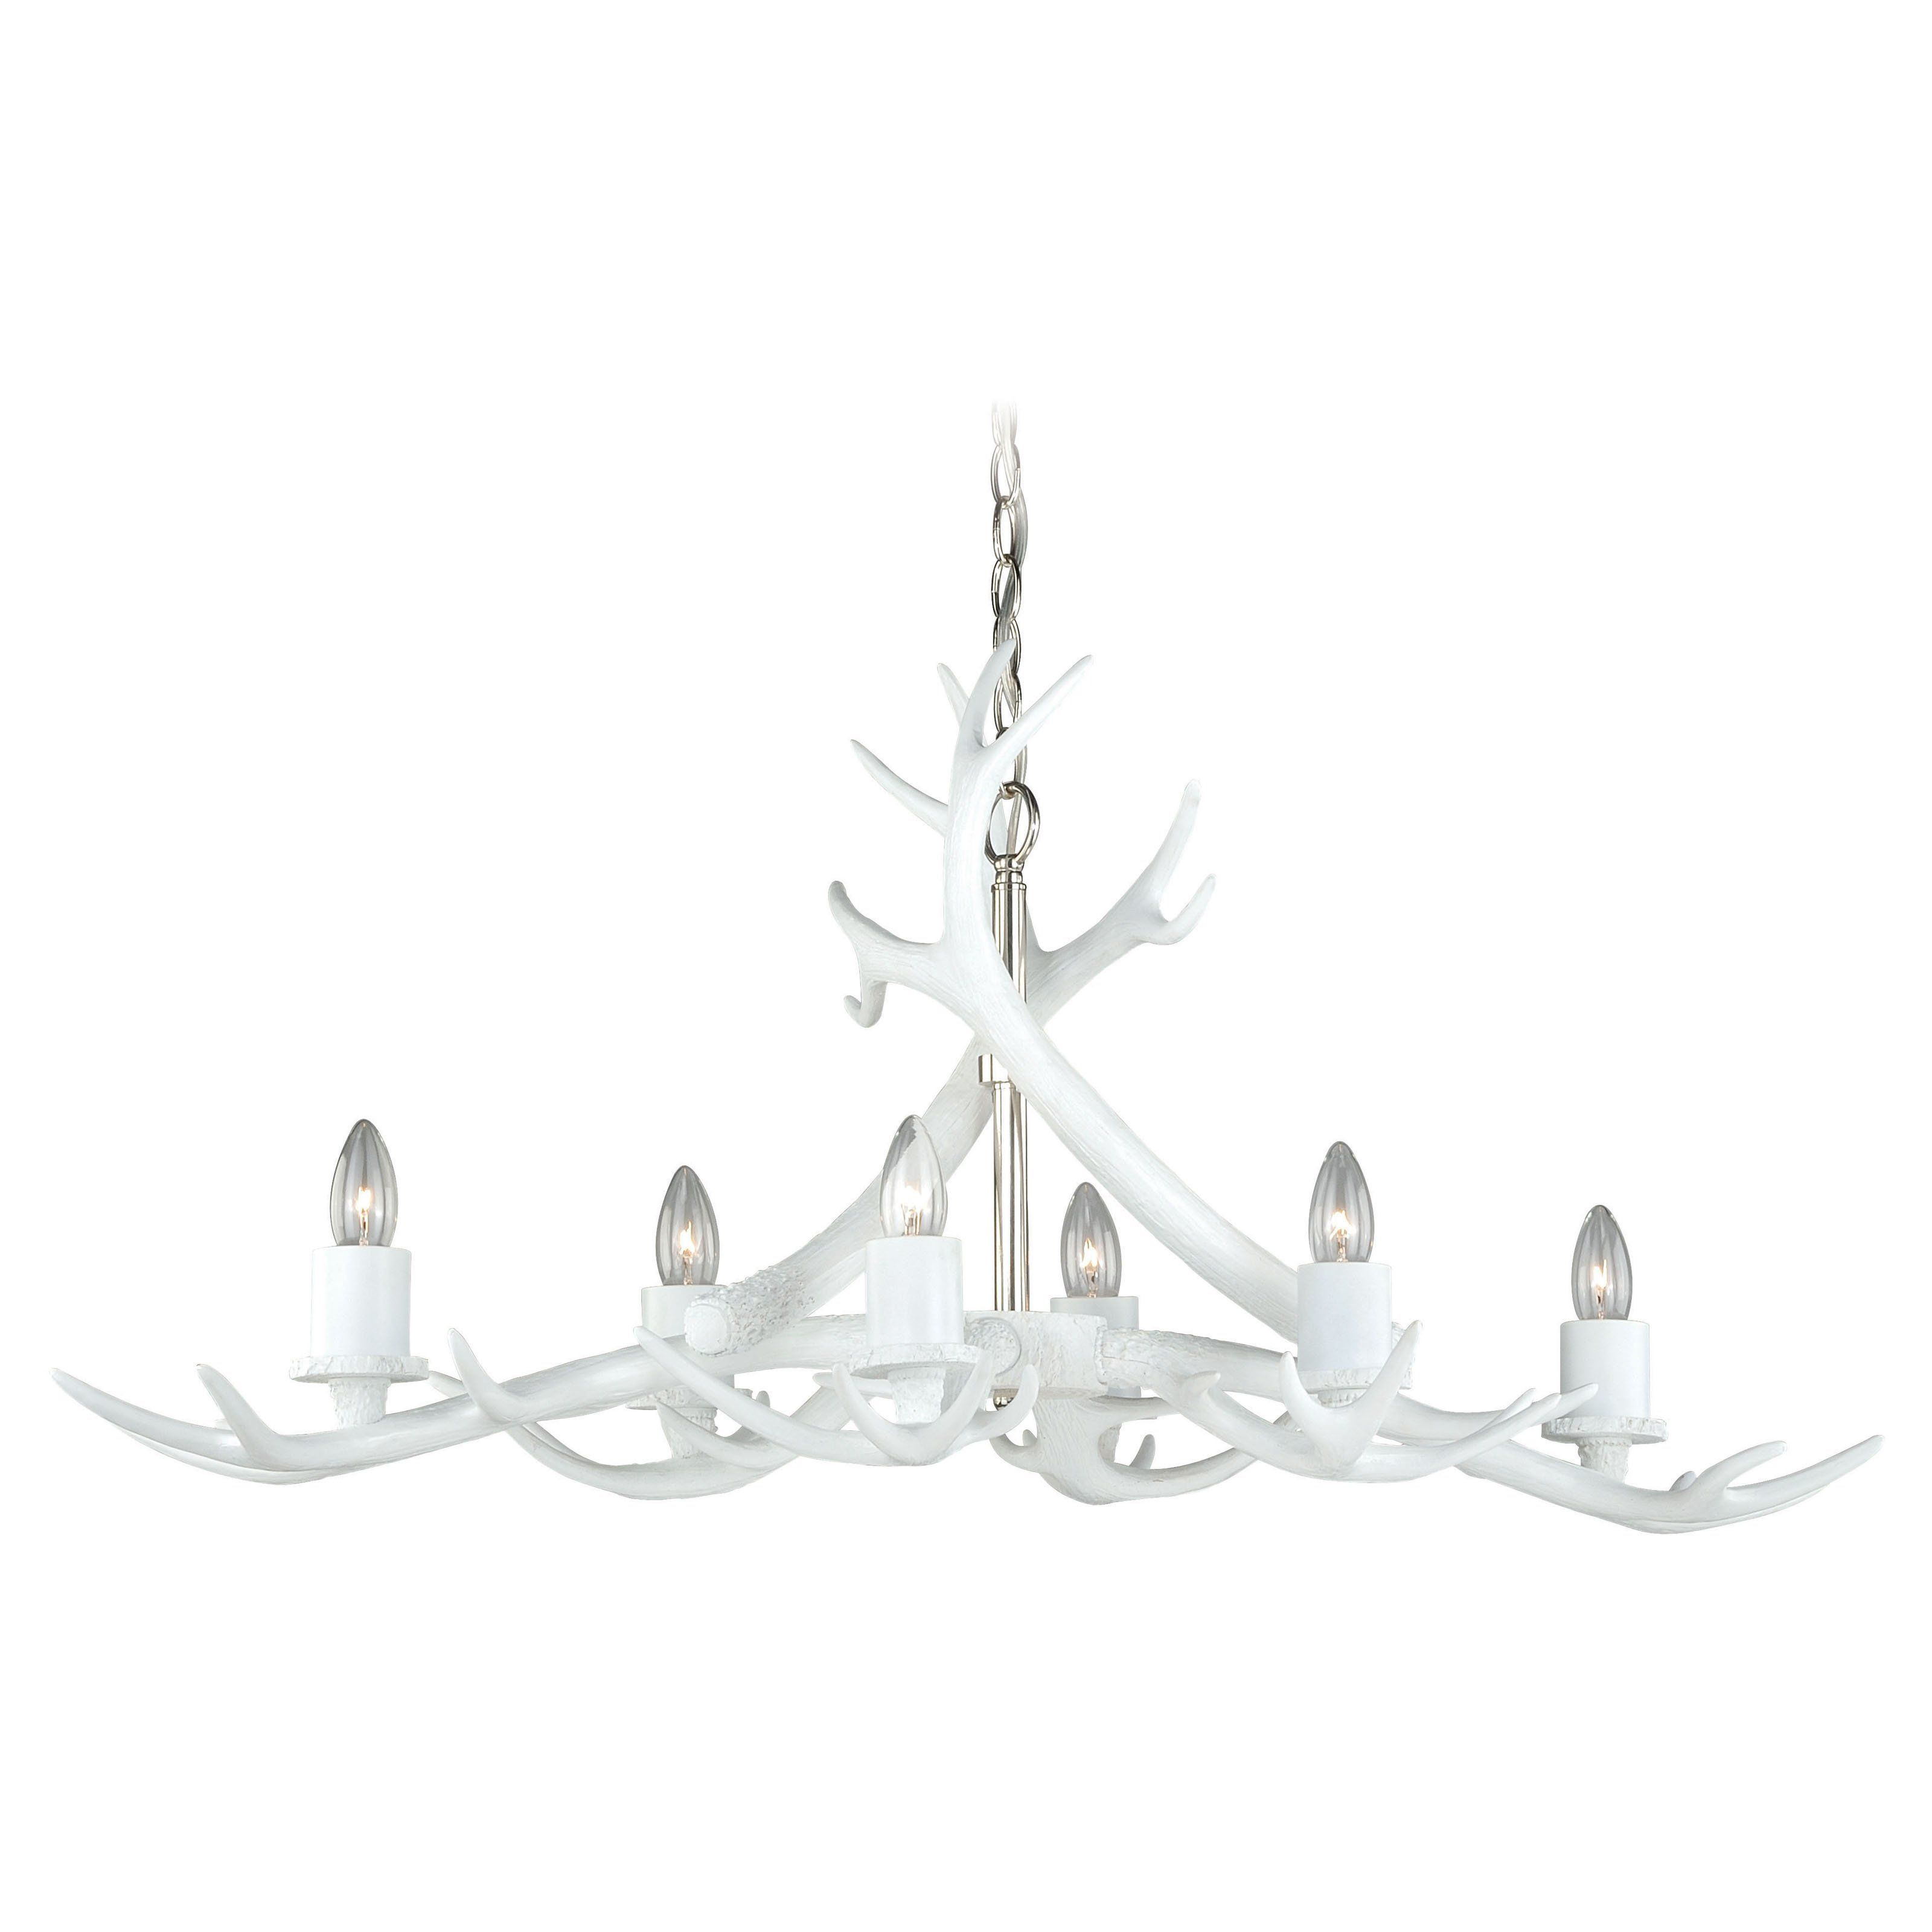 Vaxcel Vail H0161 Linear Chandelier H0161 Products